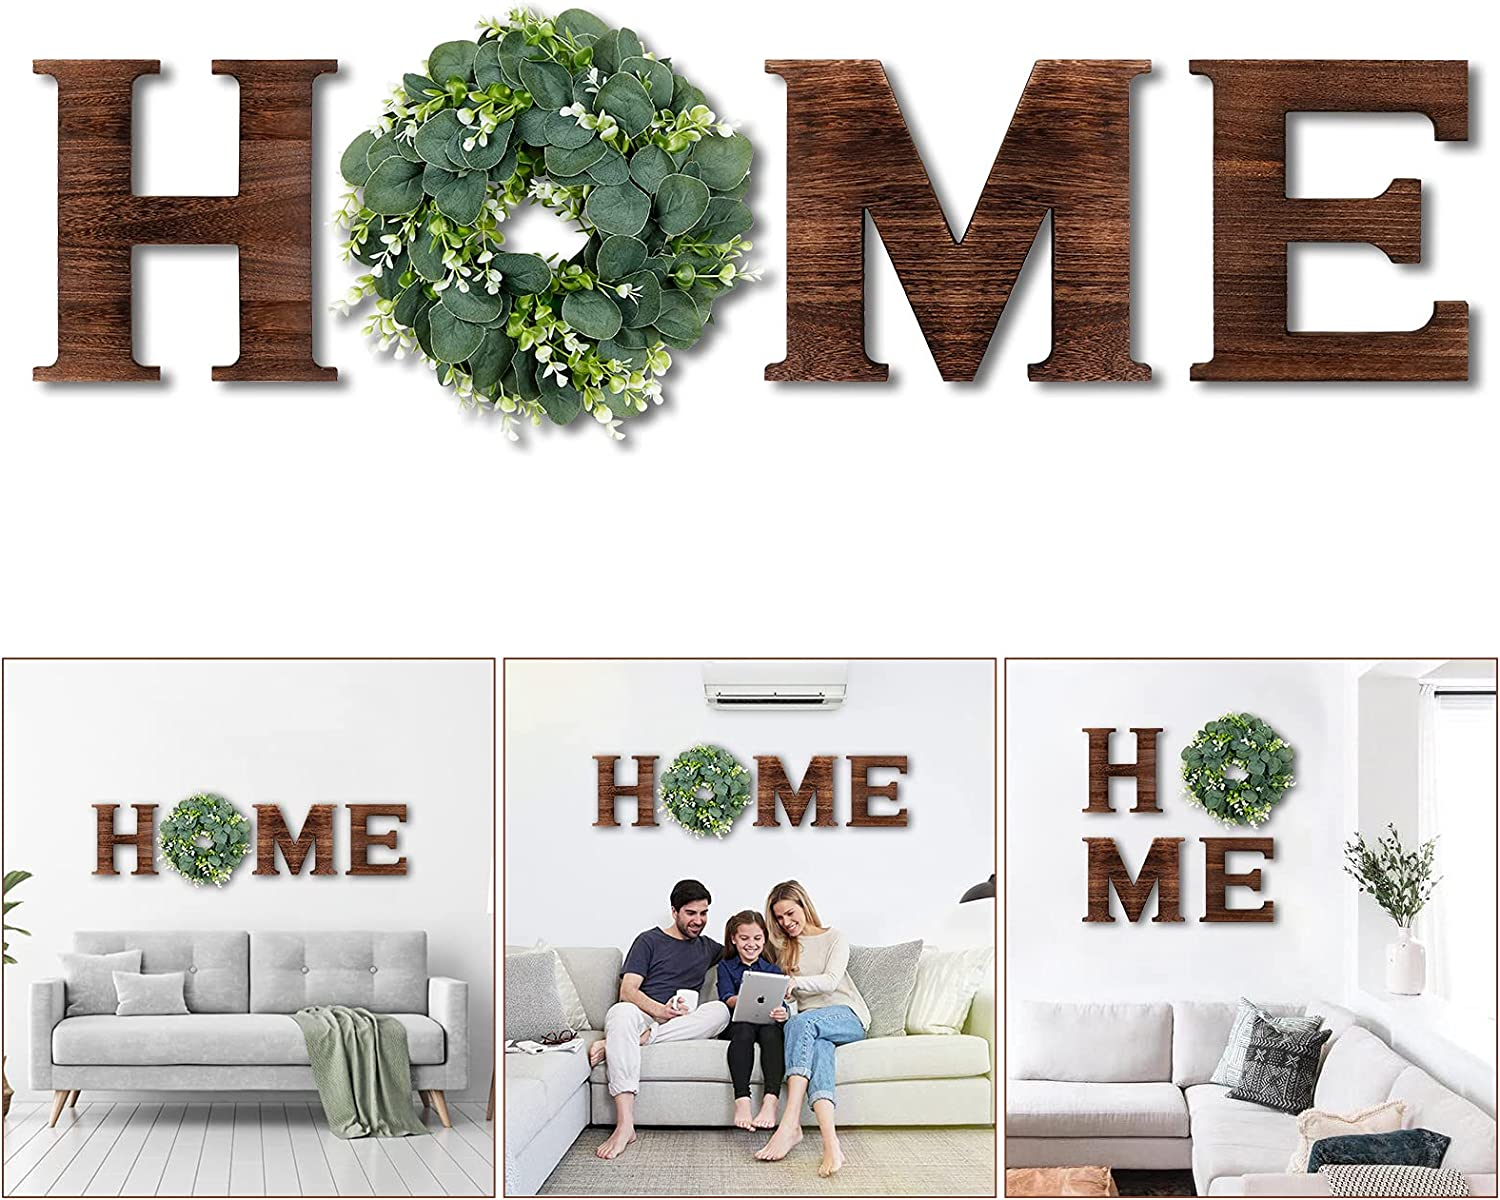 AerWo Rustic Home Sign with Artificial Eucalyptus Wreath, Wood Letters for Wall Decor, Wall Letters Decor for Living Room, Entry Way, Bedroom, Farmhouse Kitchen, Home Decor, Housewarming Gift(Brown)